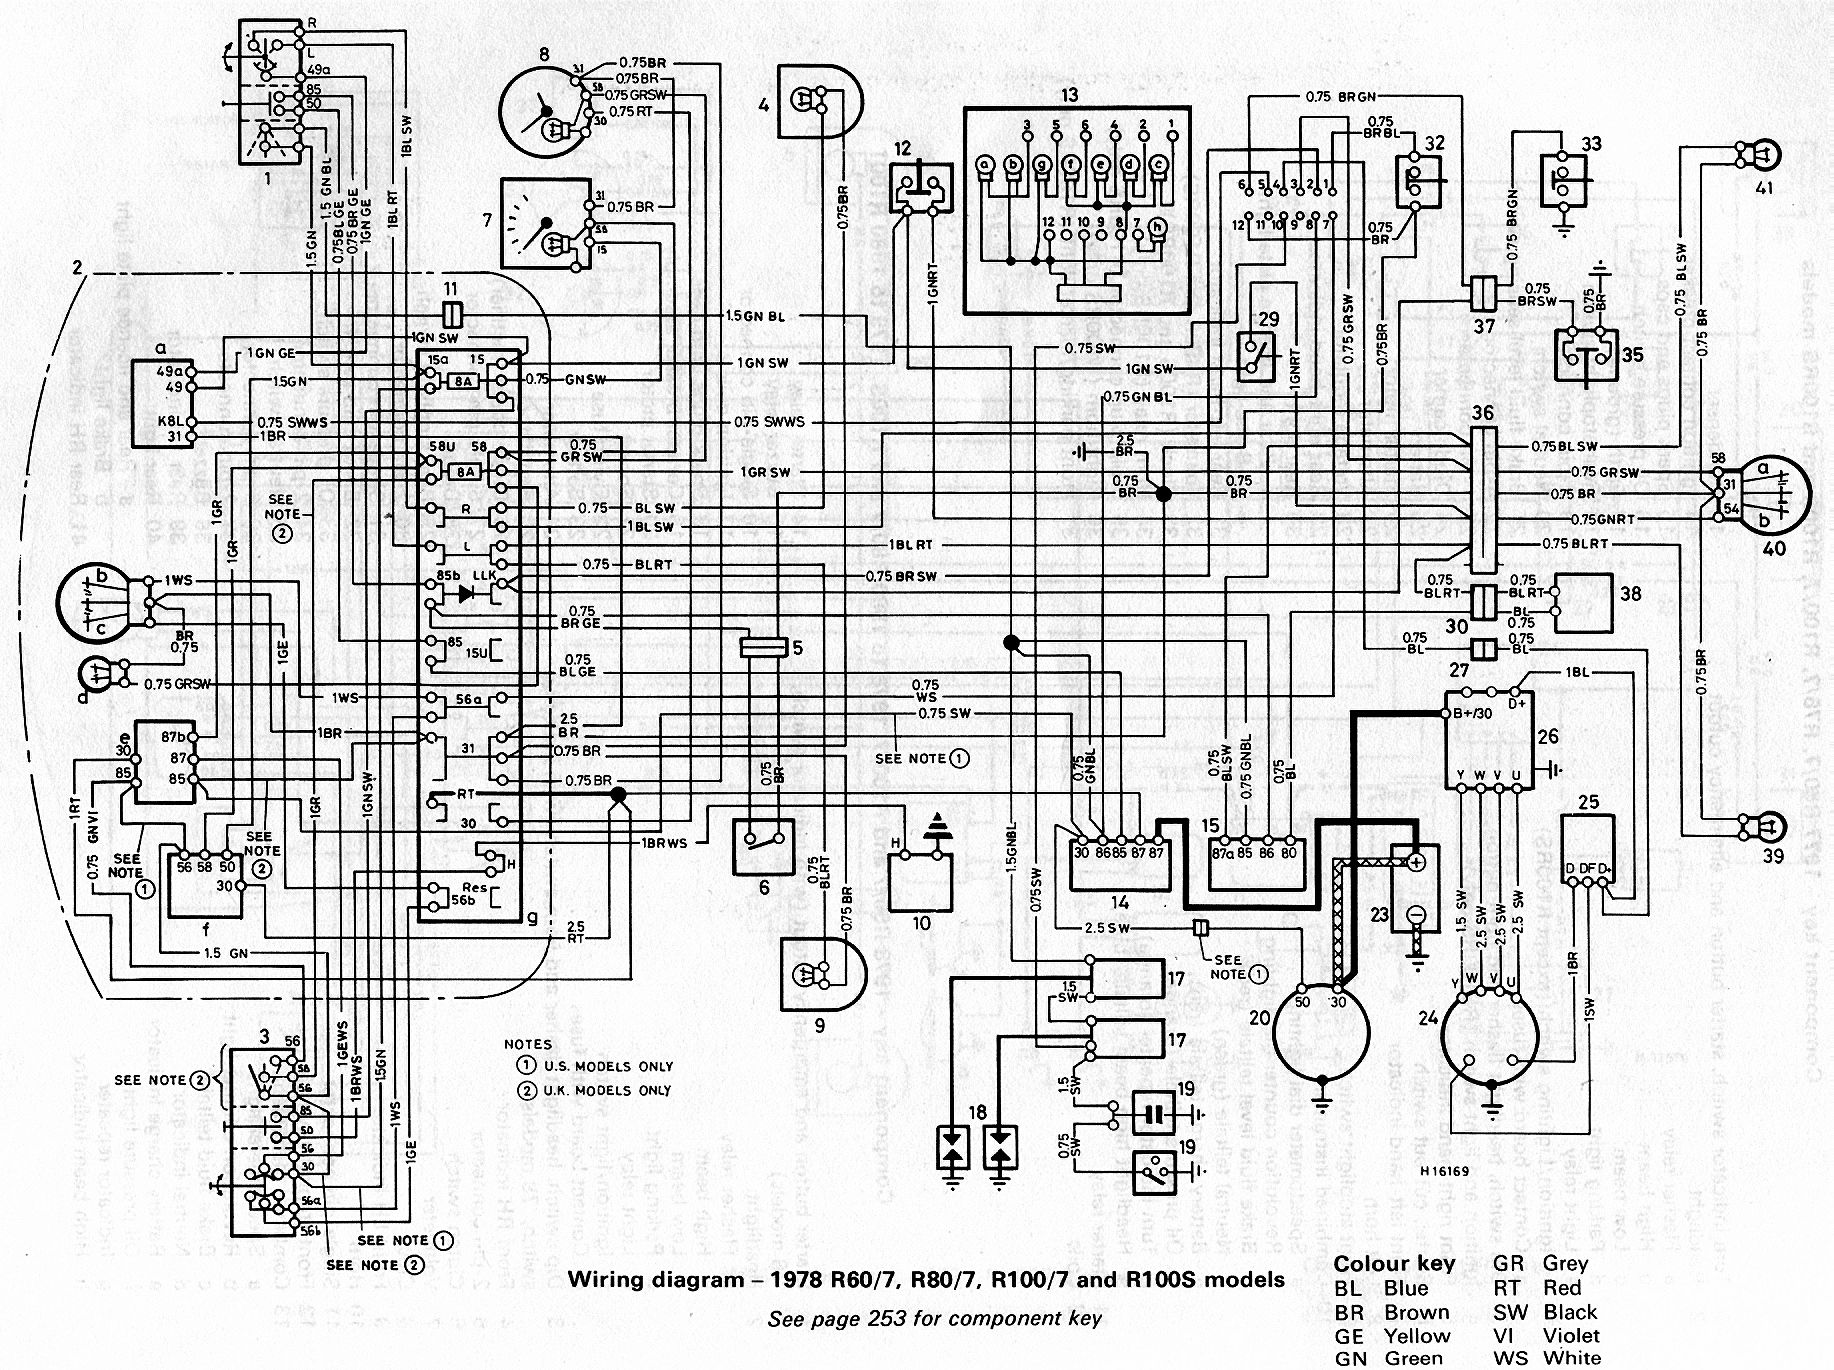 8f3d5bdc366bc8047b57a15e9aa060ff bmw 1984 r80 7 wiring diagram chassis wire harness bmw r airhead bmw r100rs gauge wiring diagram at honlapkeszites.co